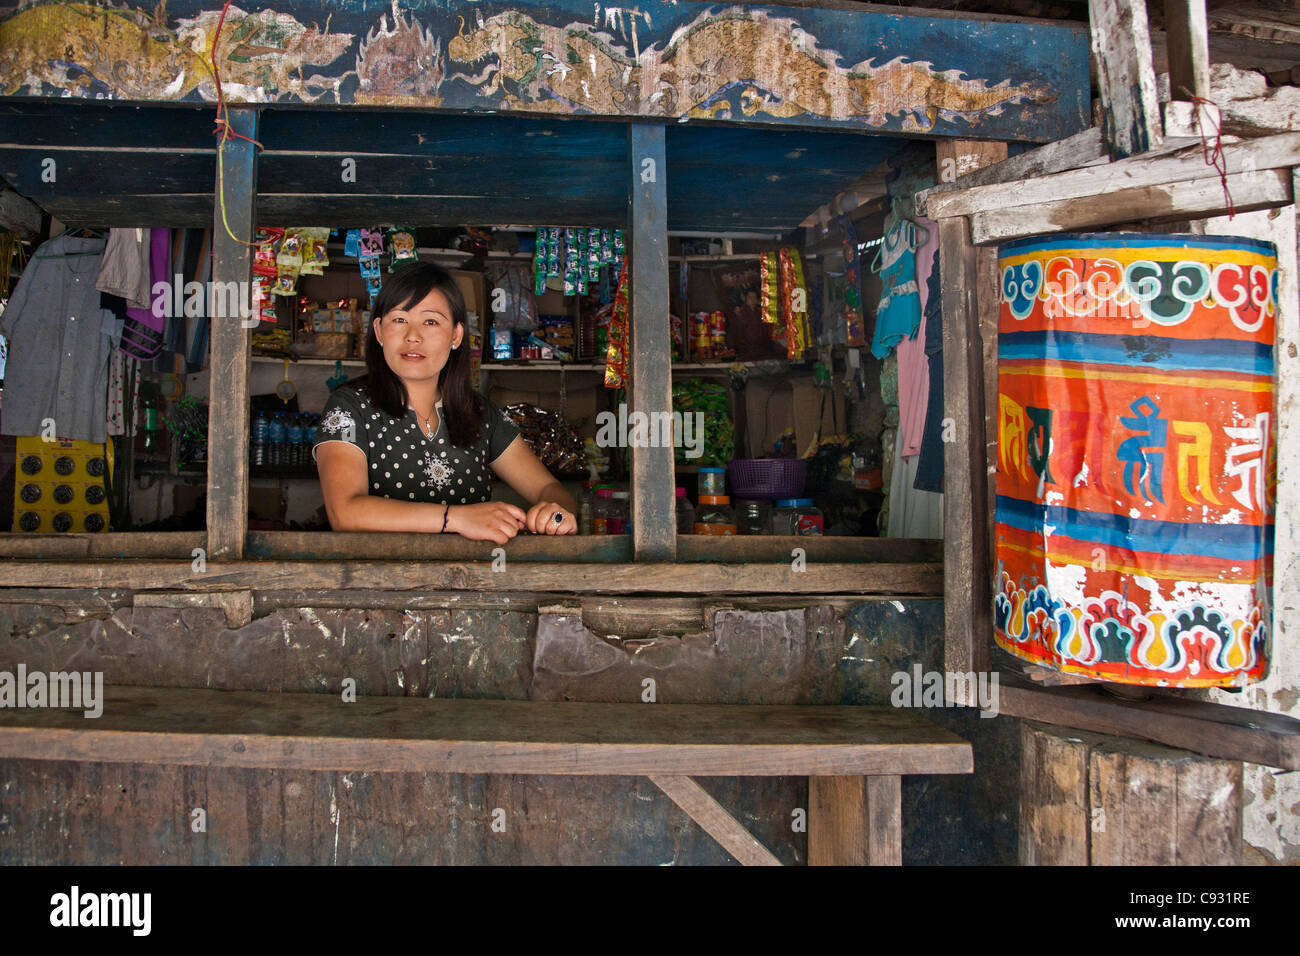 A woman shopkeeper in her small rural shop on the banks of the Kolounchu River just outside Trashigang. - Stock Image